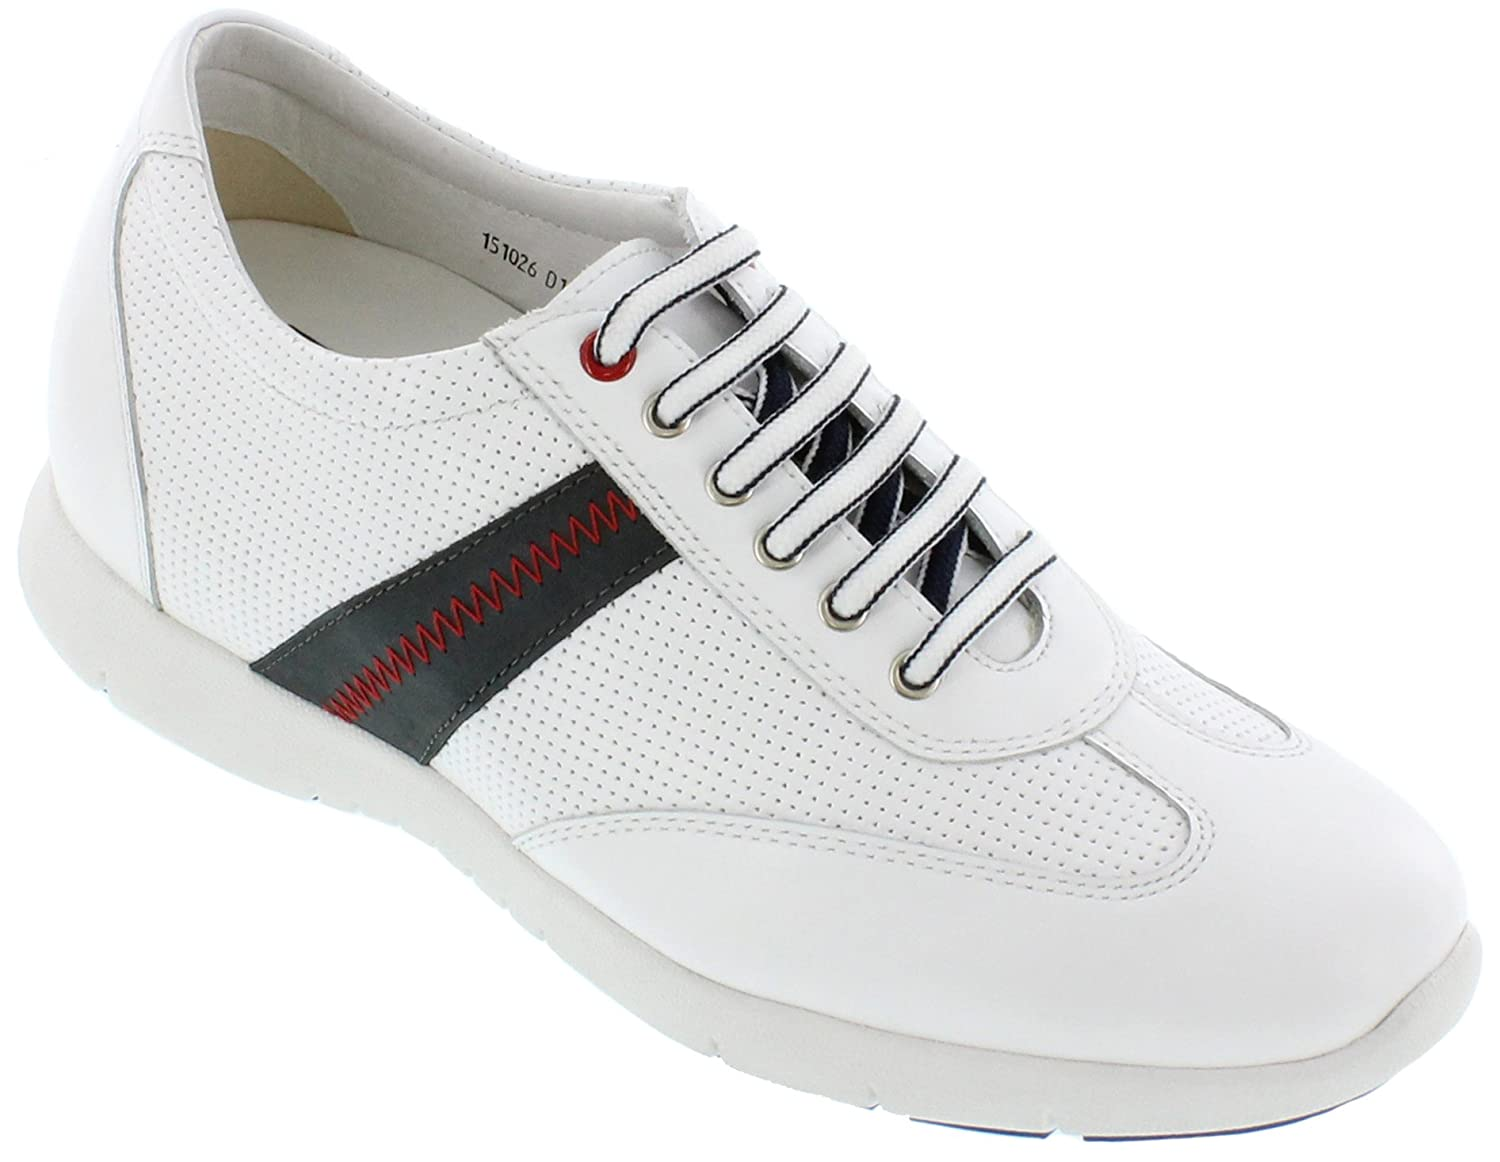 Toto D11032-2.8 inches Taller - Height Increasing Elevator Shoes - White Lace-up Casual Shoes